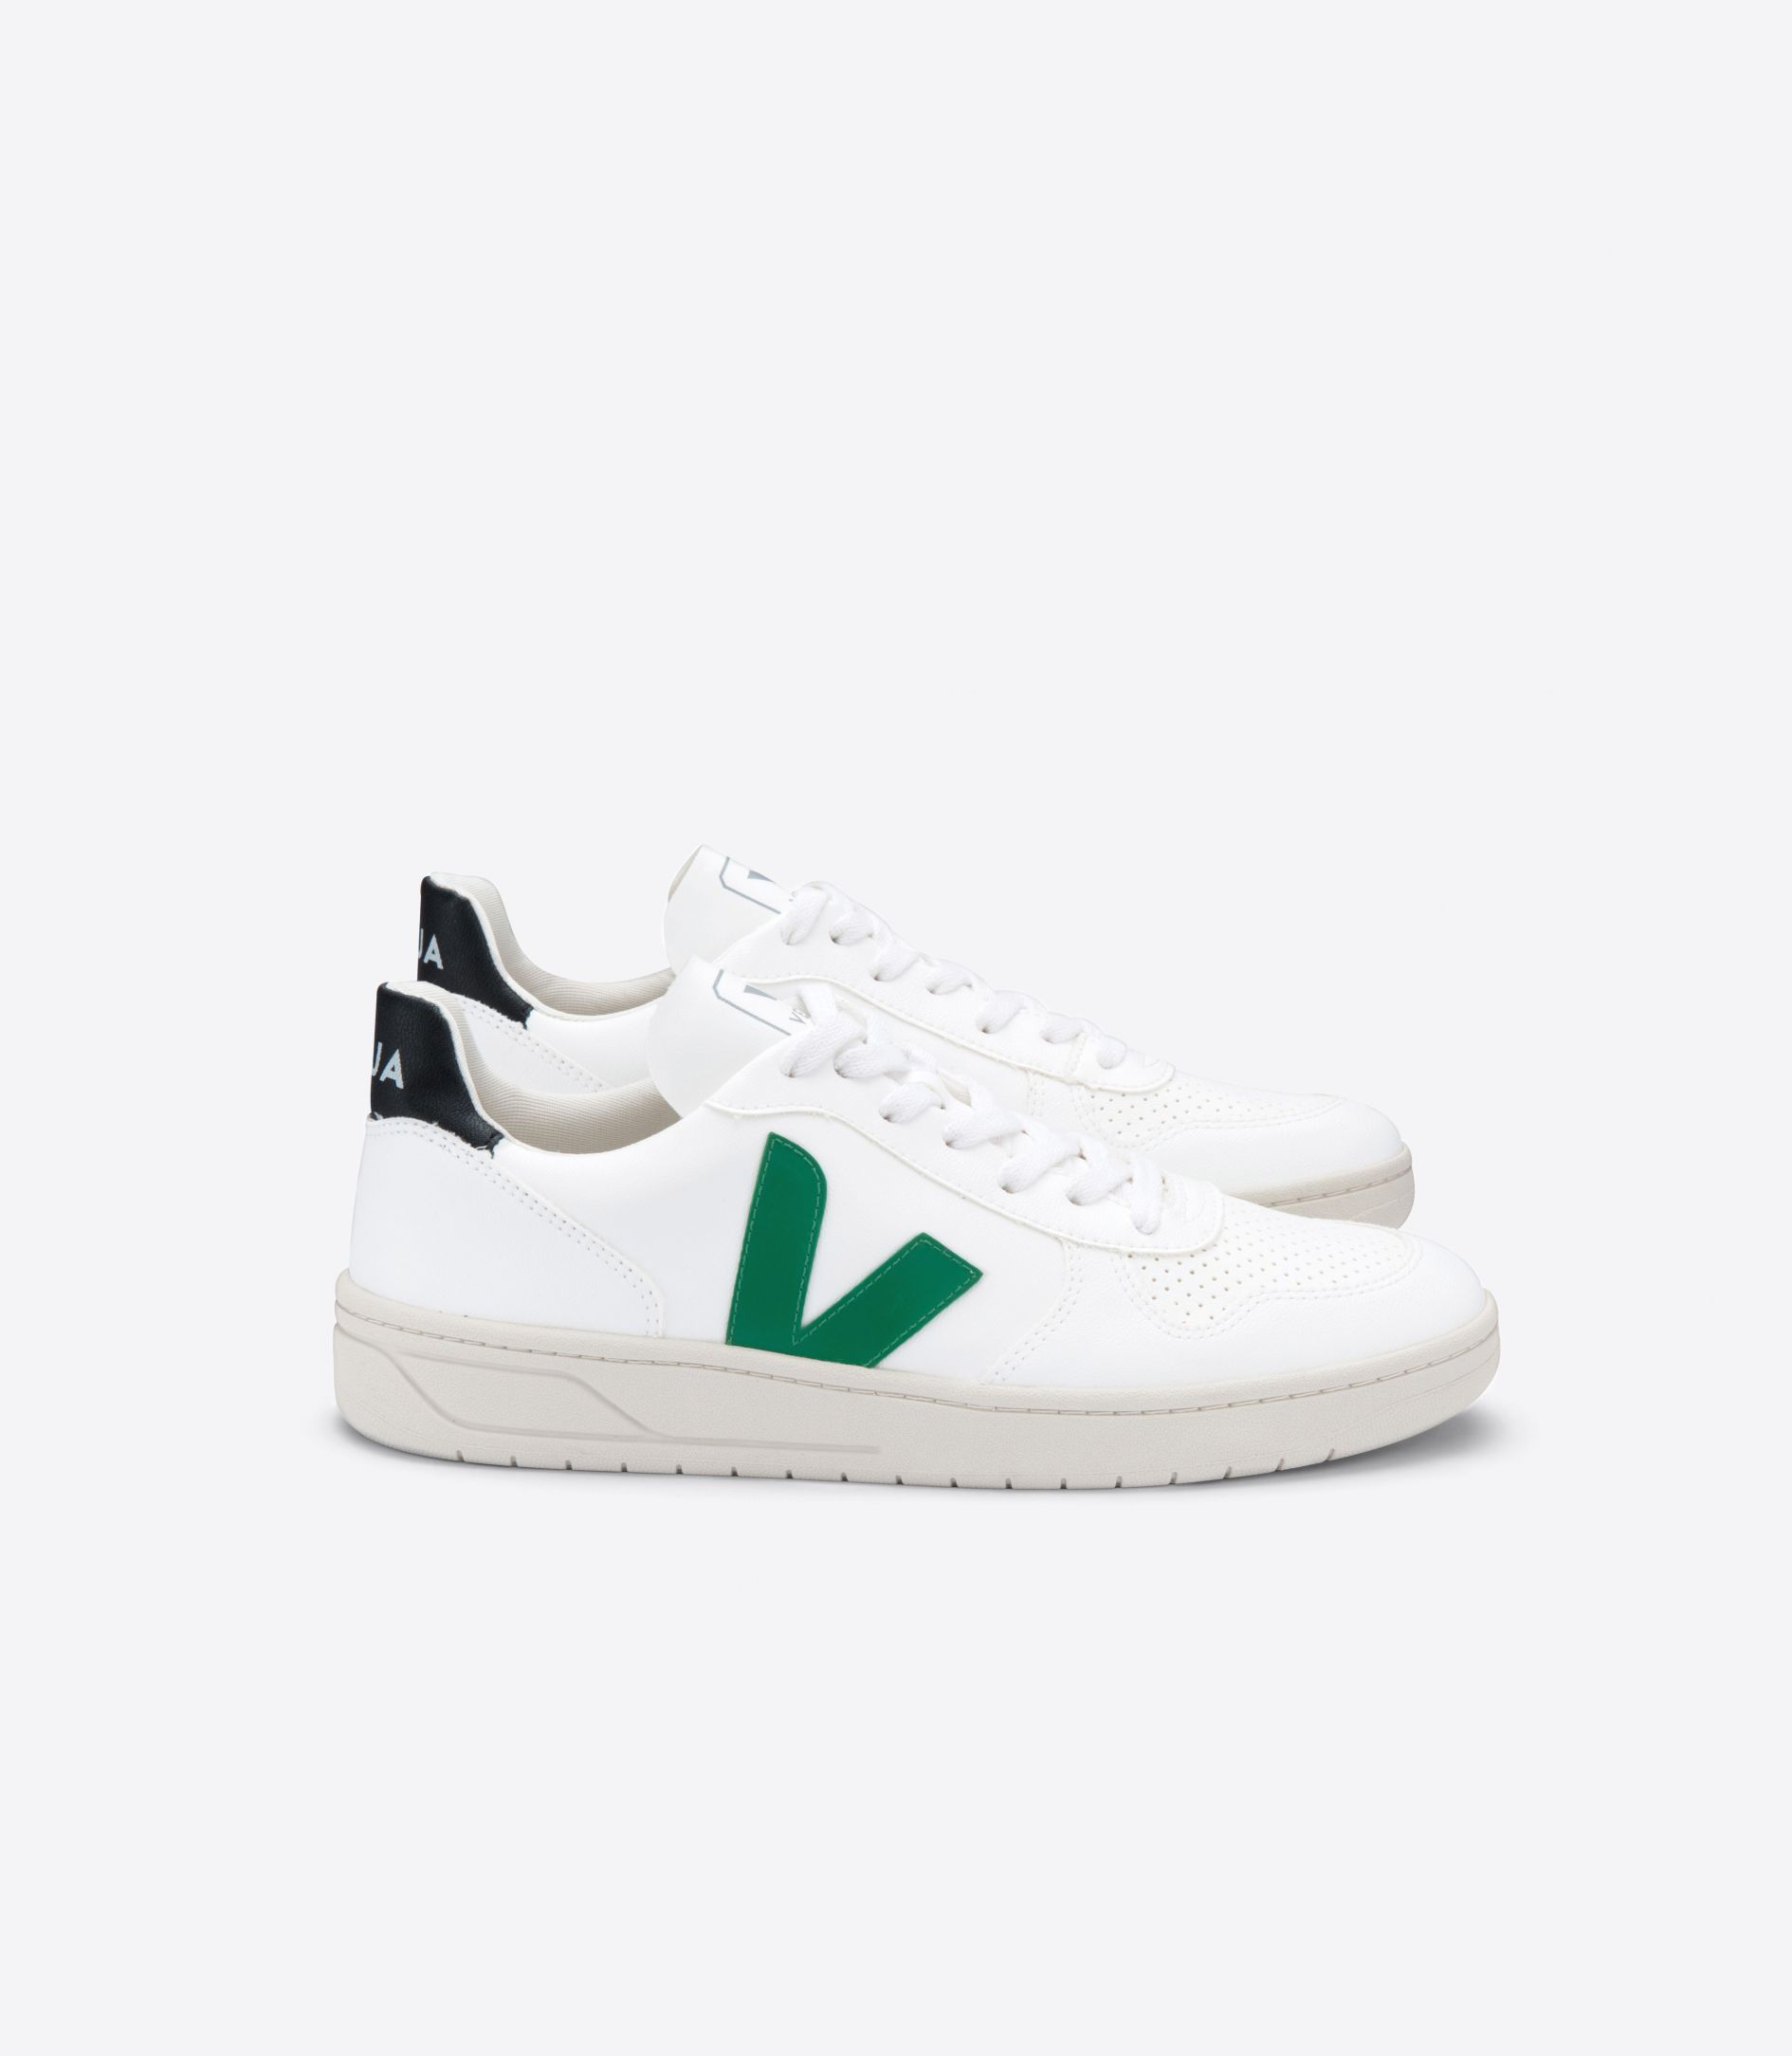 17 green ways for St. Patrick's Day | Veja Vegan Sneackers in Emeraude | Eat. Drink. Work. Play.